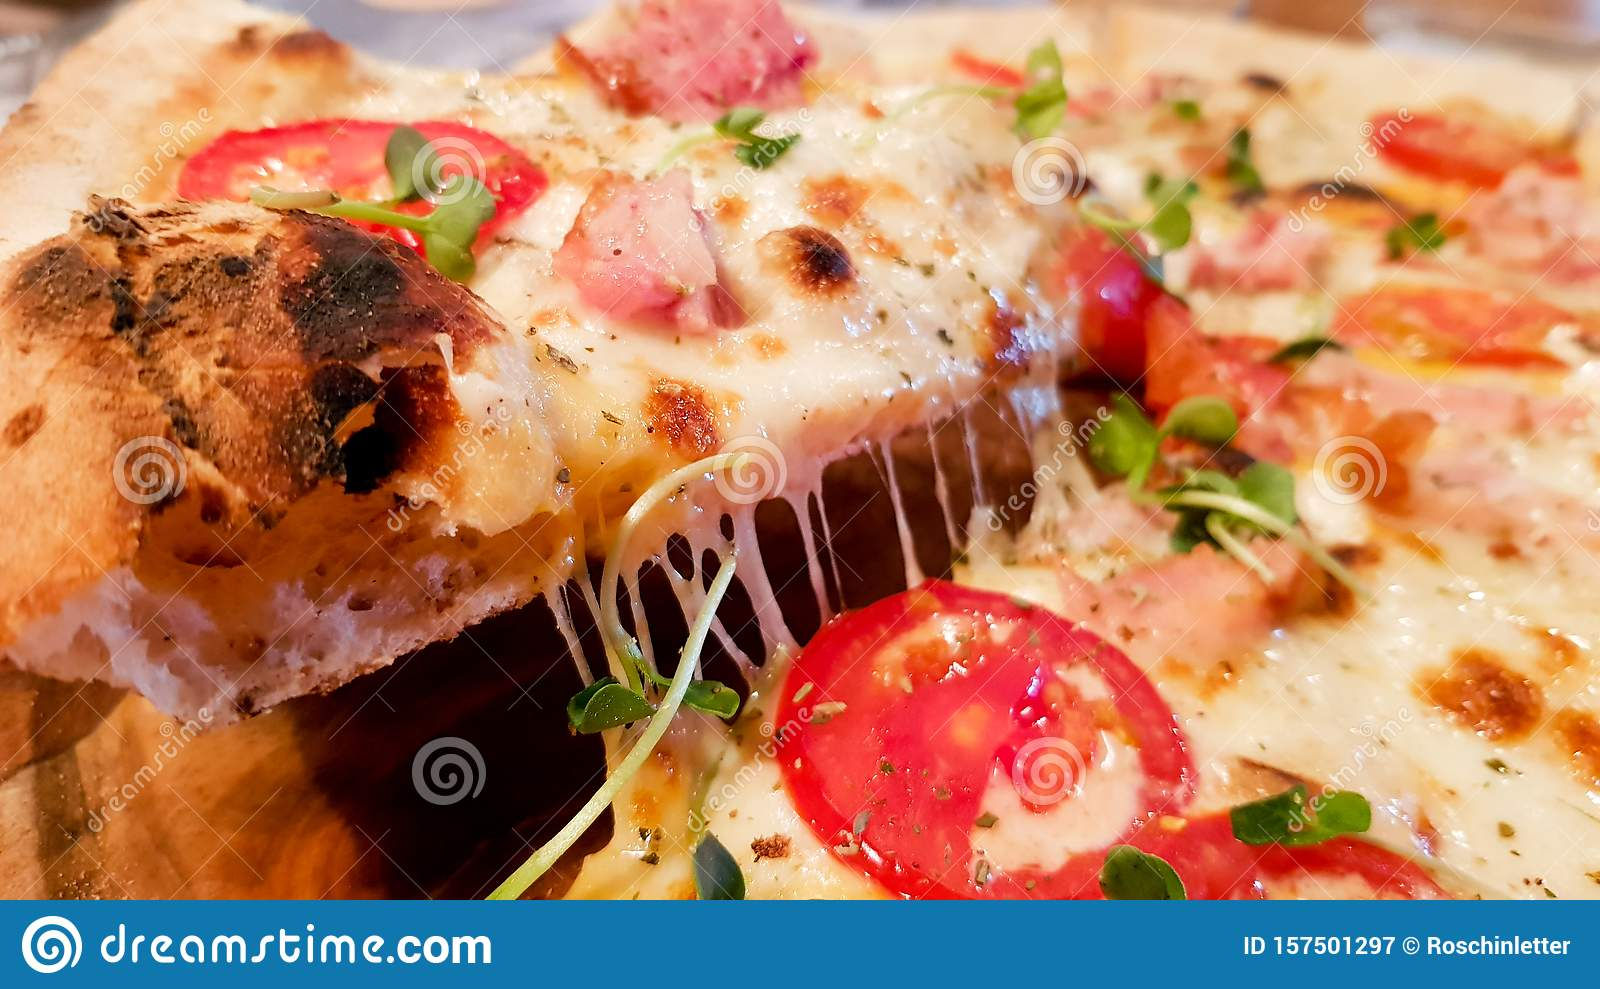 A slice of hot pizza, large cheese, lunch or dinner, seafood crust, meat sauce. with bell pepper vegetables tasty delicious fast